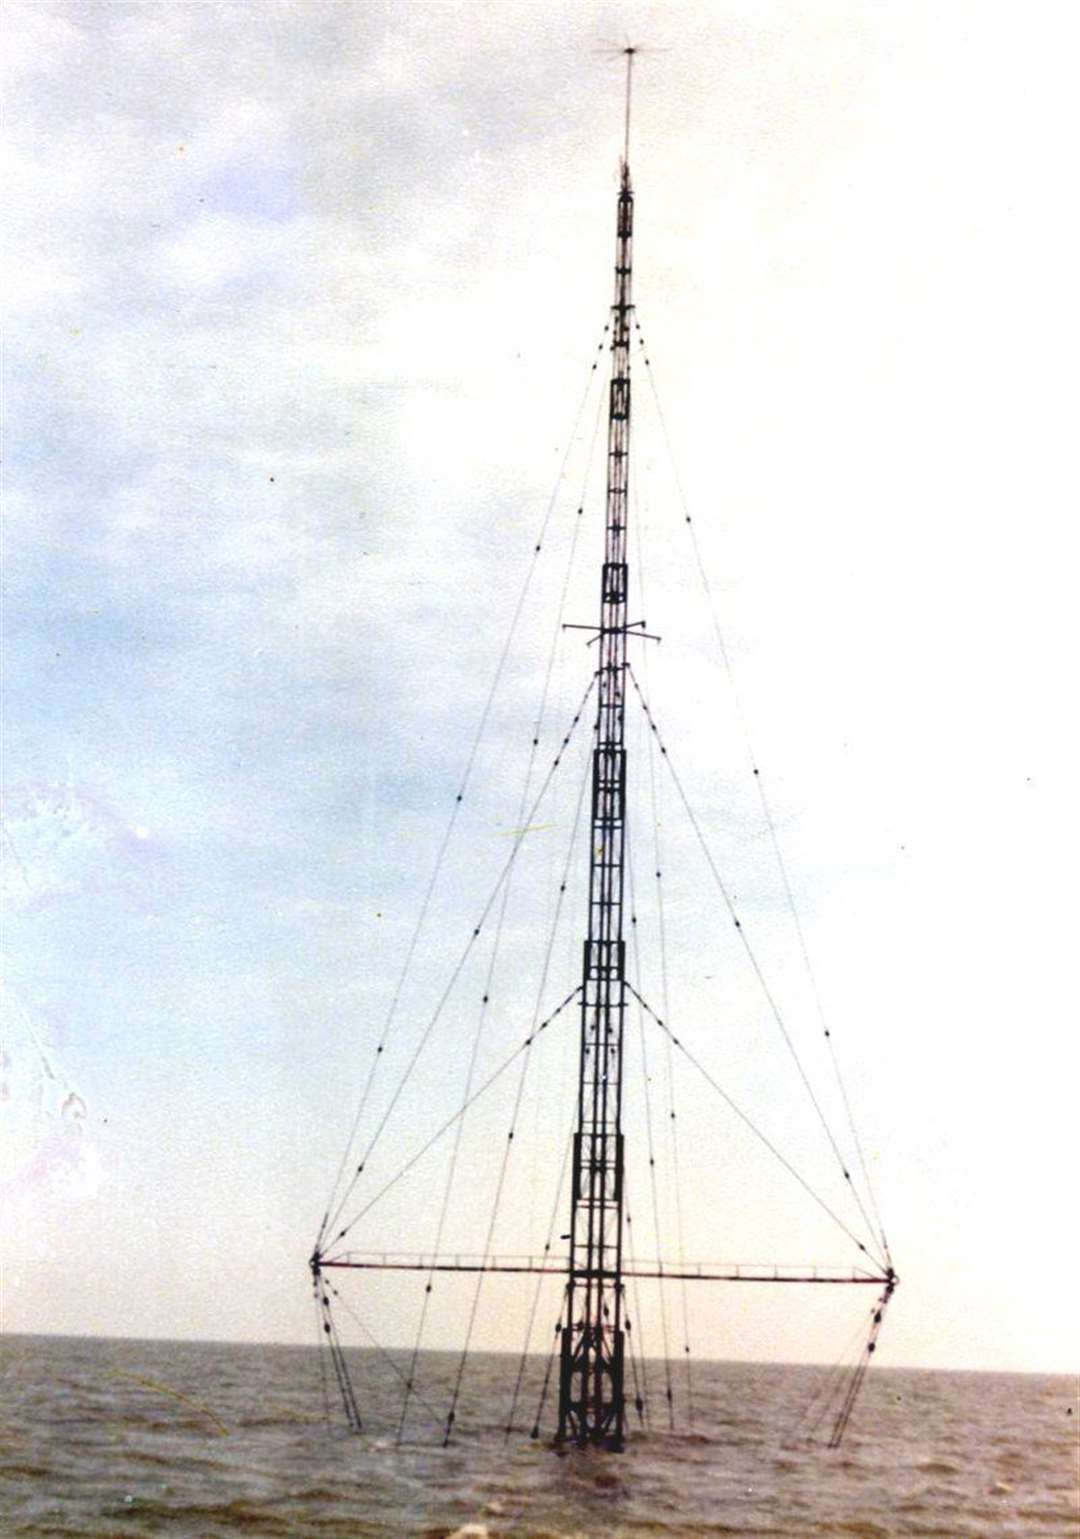 All that remained visible above the waves of Radio Caroline's Mi Amigo was the mast